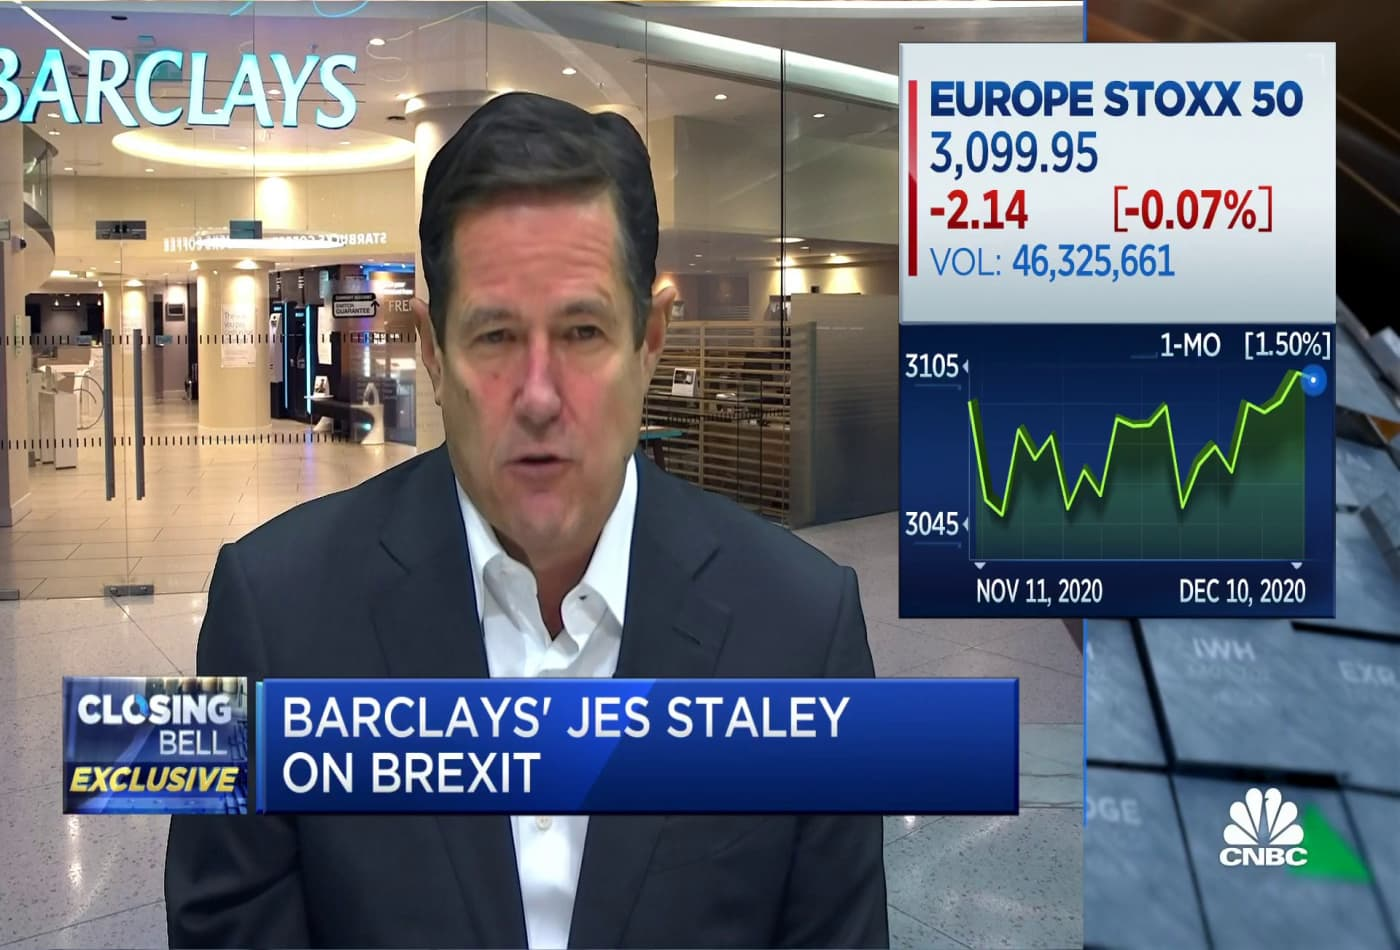 Watch CNBC's full interview with Barclays CEO Jes Staley